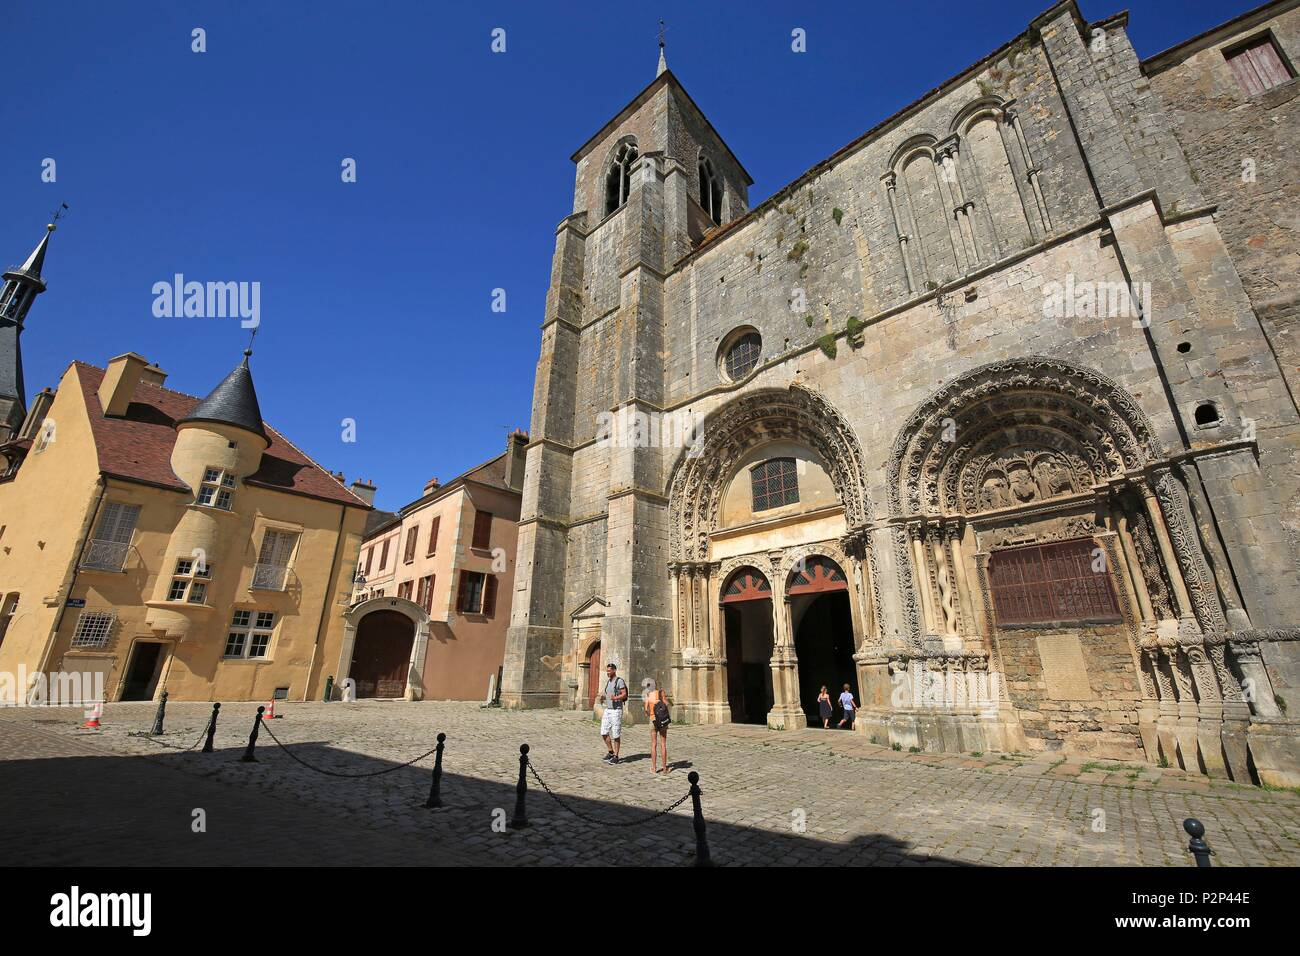 France, Yonne, Morvan region, Avallon, The church of Saint Lazare, Its architecture is Romanesque and its portal dates from the twelfth century It is dedicated to Saint Lazarus - Stock Image